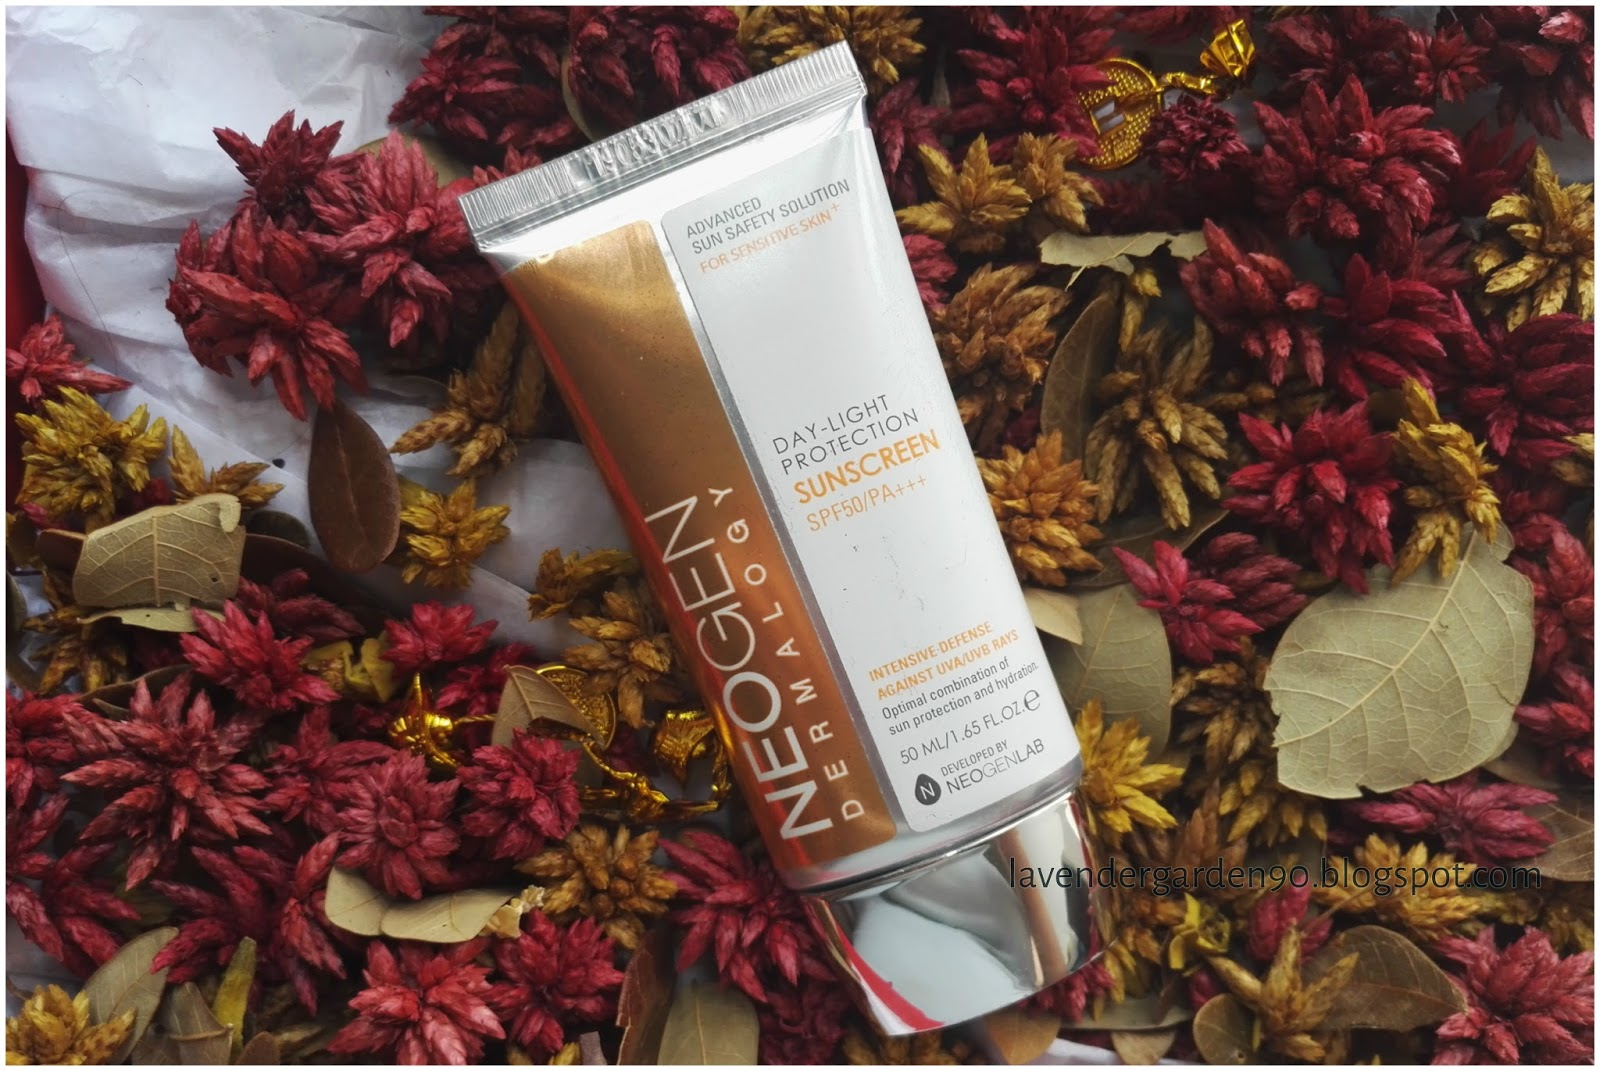 Kem chống nắng NEOGEN Day-Light Protection SunScreen SPF 50/PA+++